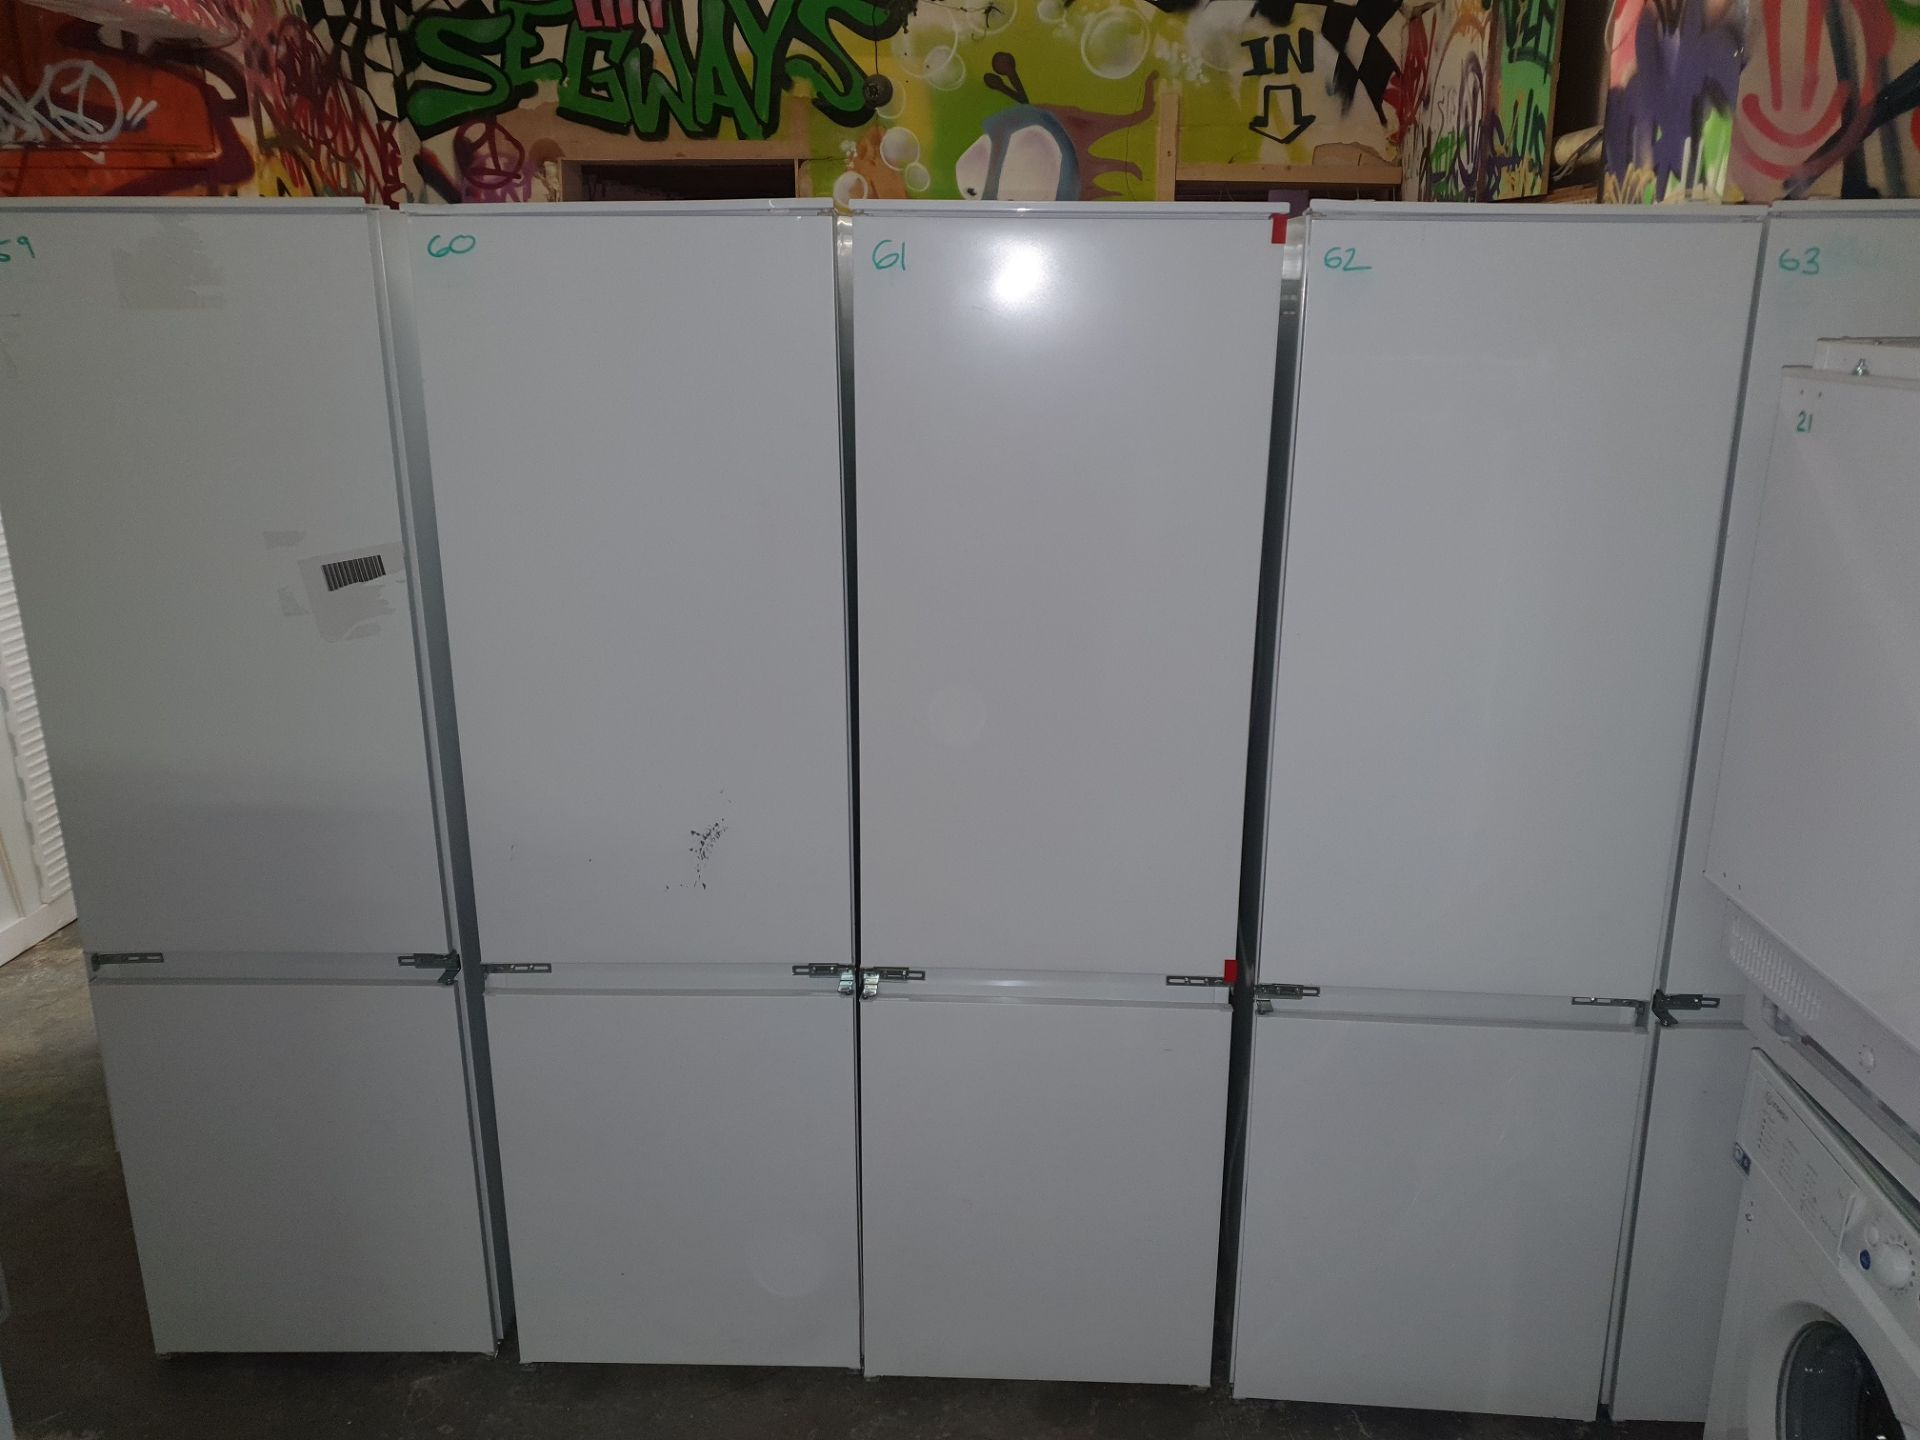 NEW/GRADED AND UNPACKAGED Prima PRRF500 50/50 * Frost Free * Integrated Fridge Freezer (Brand new - Image 2 of 14